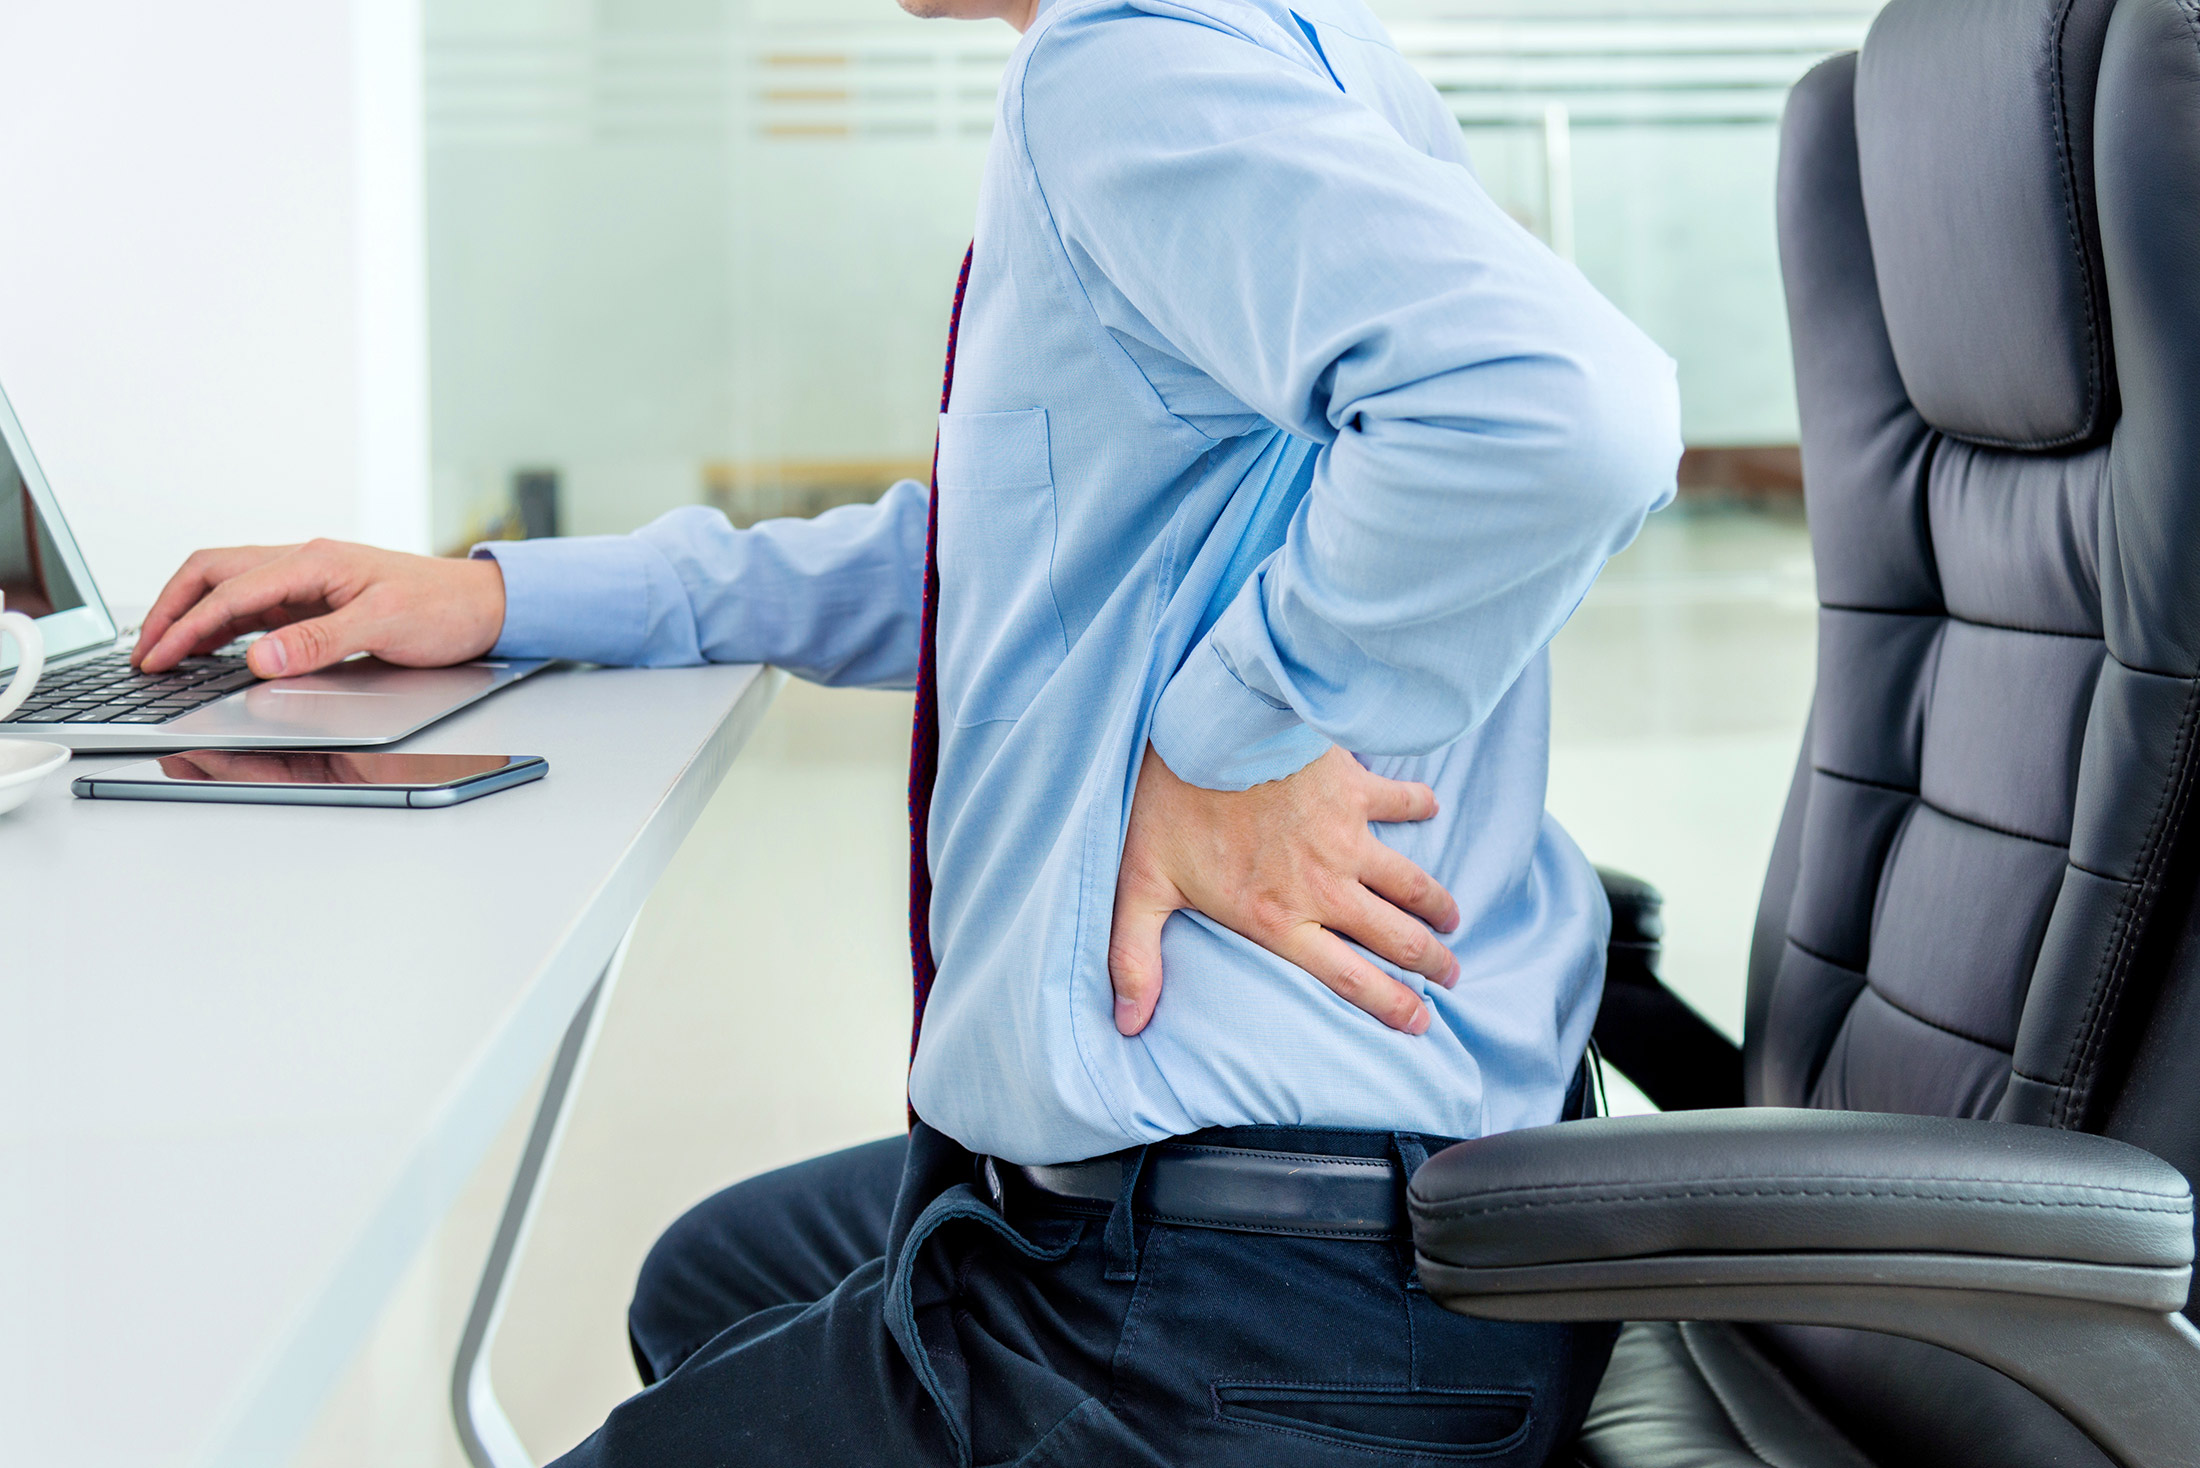 back and neck pain while working from home and how to prevent